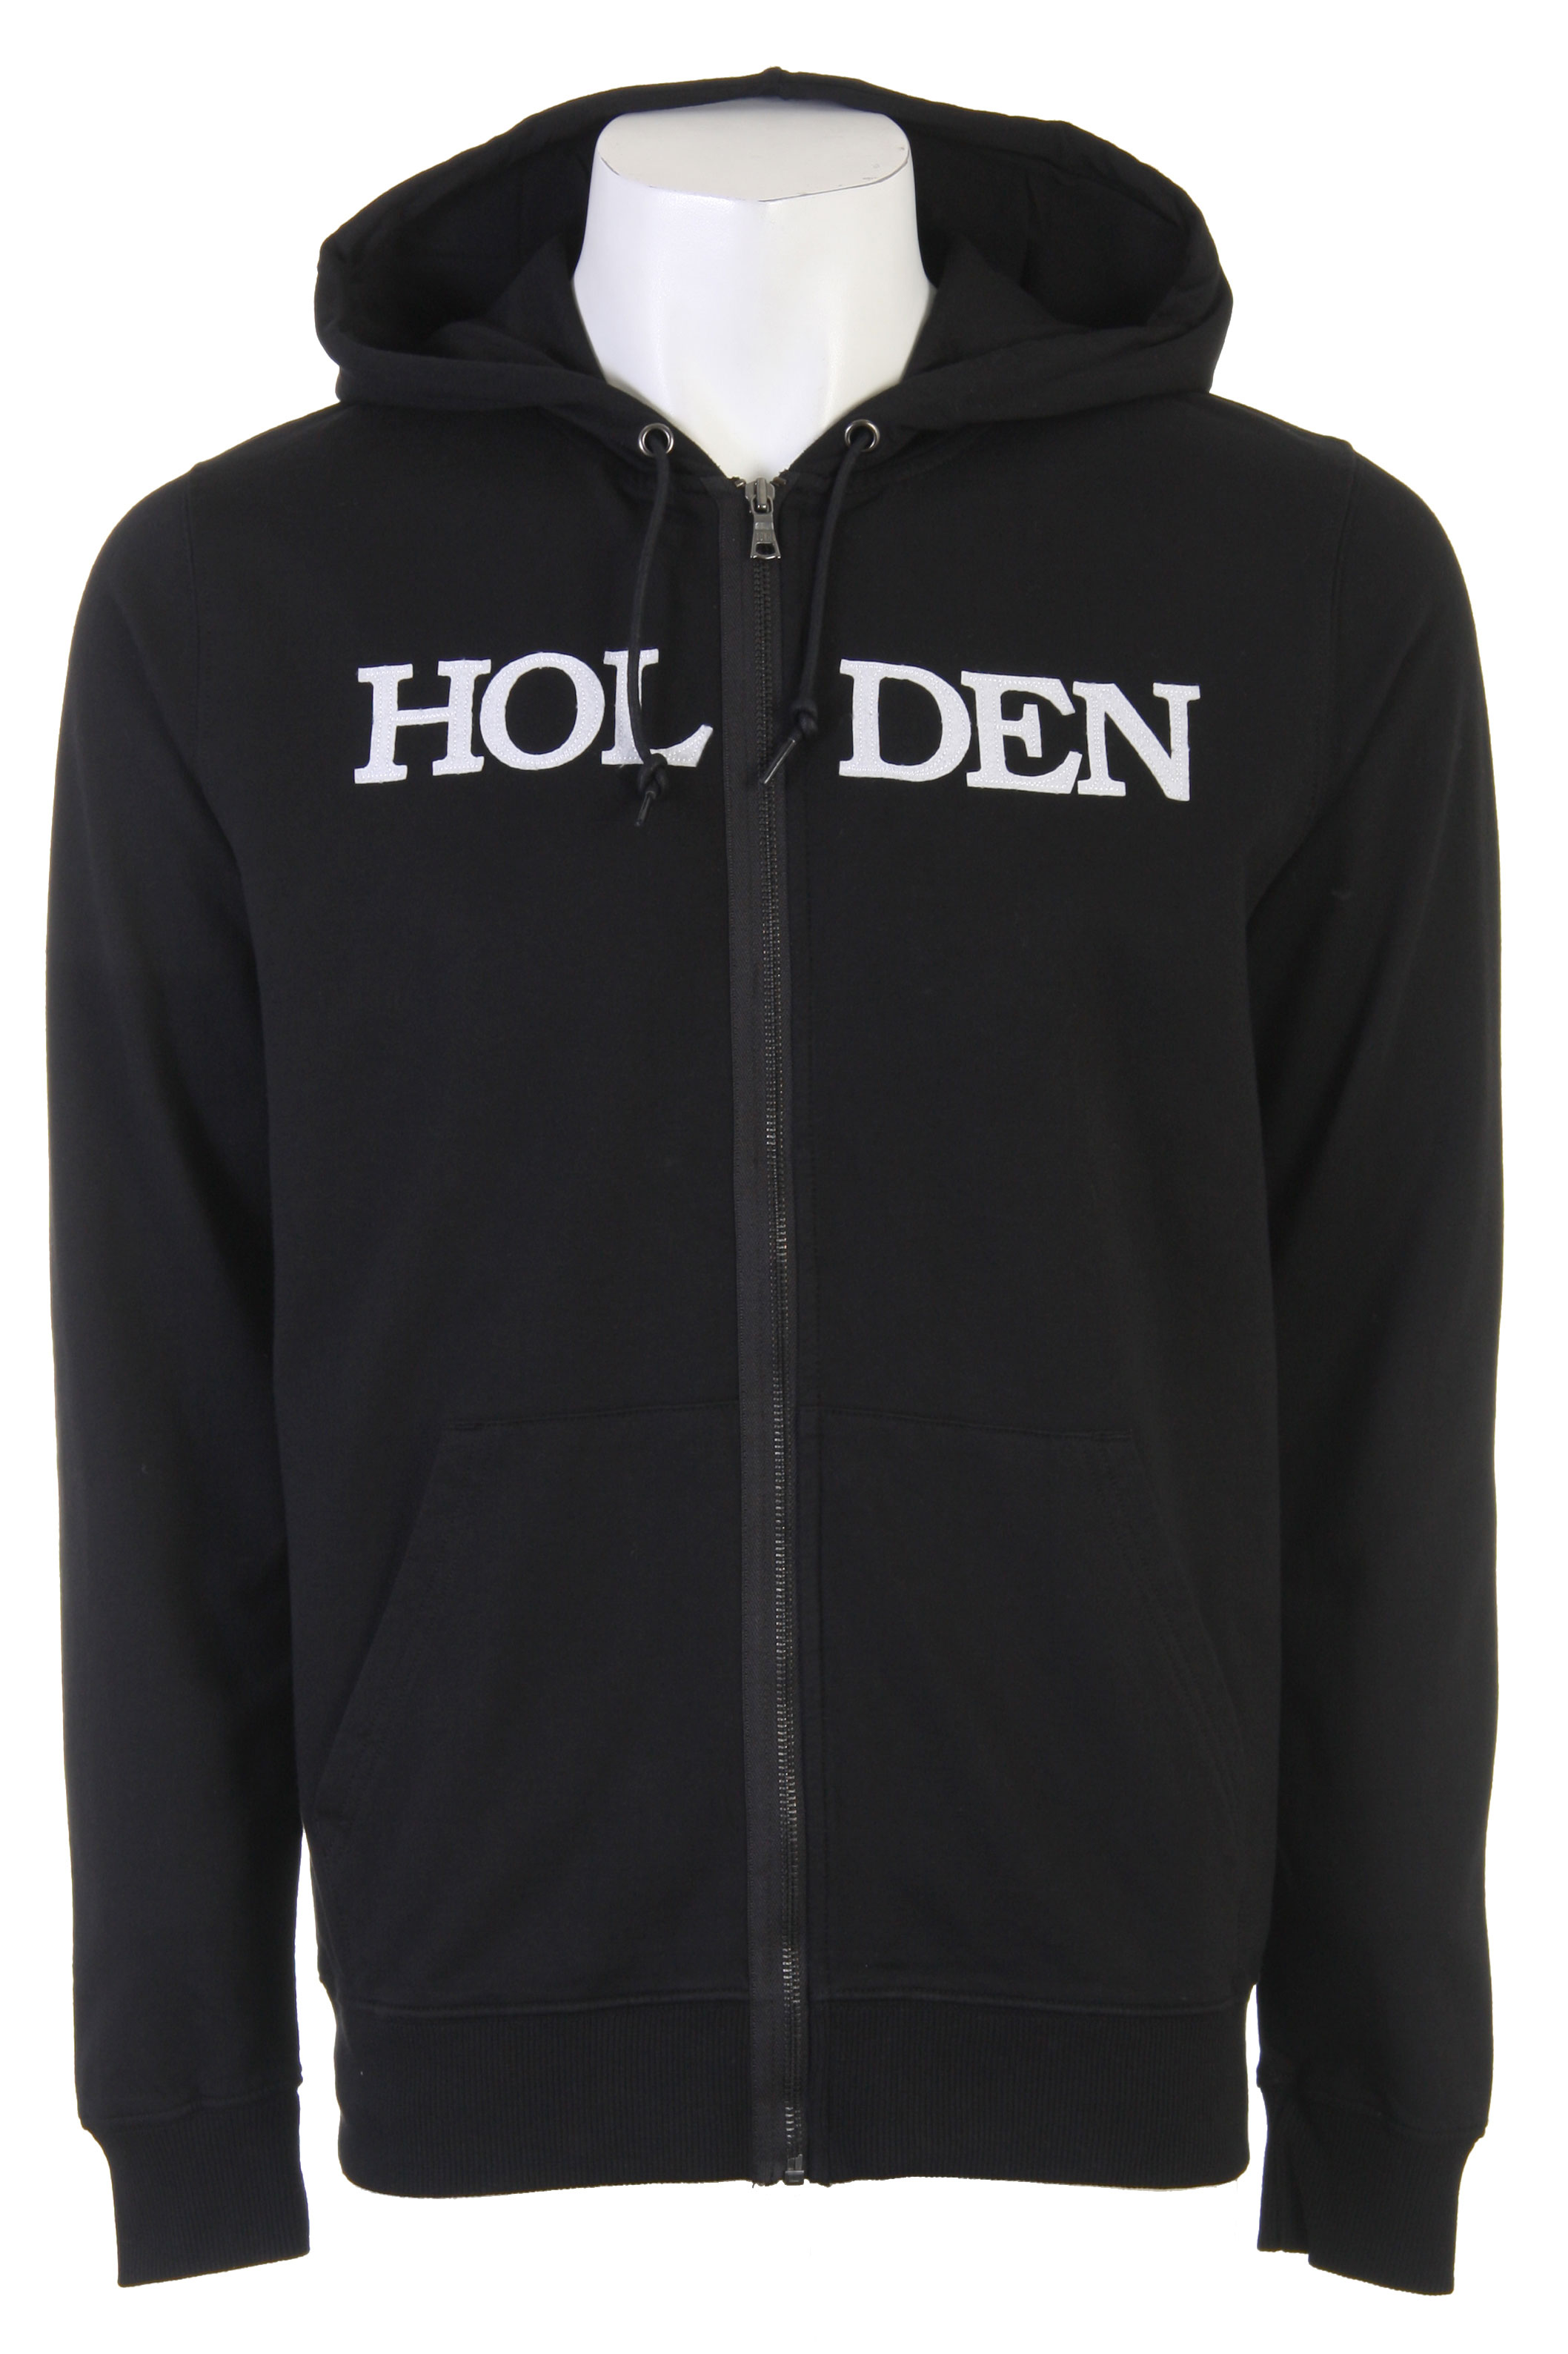 Check out this cool looking Holden hoodie, it has the Felt bookman logo applique on the front of the hoodie, and is great for cold weather and having fun. With a variety of sizes and colors from you to choose from there is no way you can go wrong with this Holden hoodie. Simple yet awesome design, great snow boarding wear, so get warm this winter year and say bye bye to the winter weather this season!Key Features of the Holden Bookman Zip Hoodie: Mid-weight fleece with heavy garment wash for soft vintage feel Felt bookman logo applique on frontWaxed cotton drawcord detail 80/20 Cotton Poly - $44.95